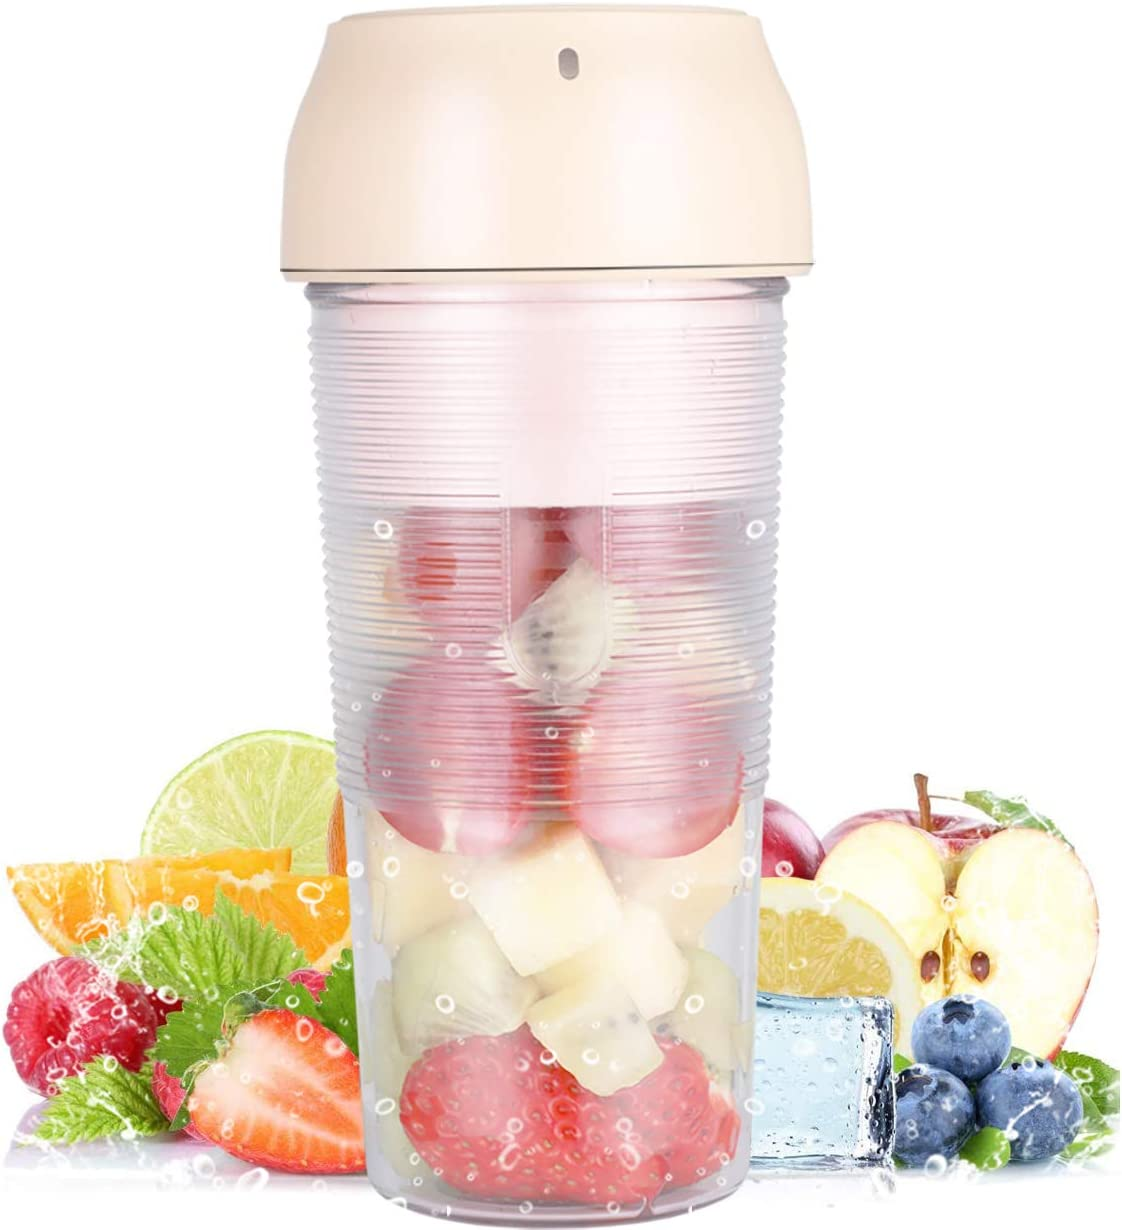 Protable Size Blender,Cordless Juicer Cup,Mini Blender for Shakes and Smoothies, Personal Blender with Rechargeable USB, Made with BPA-Free Material Portable Juicer, for Home,Office,Sports,Travel,Outdoors,School(Light Pink)